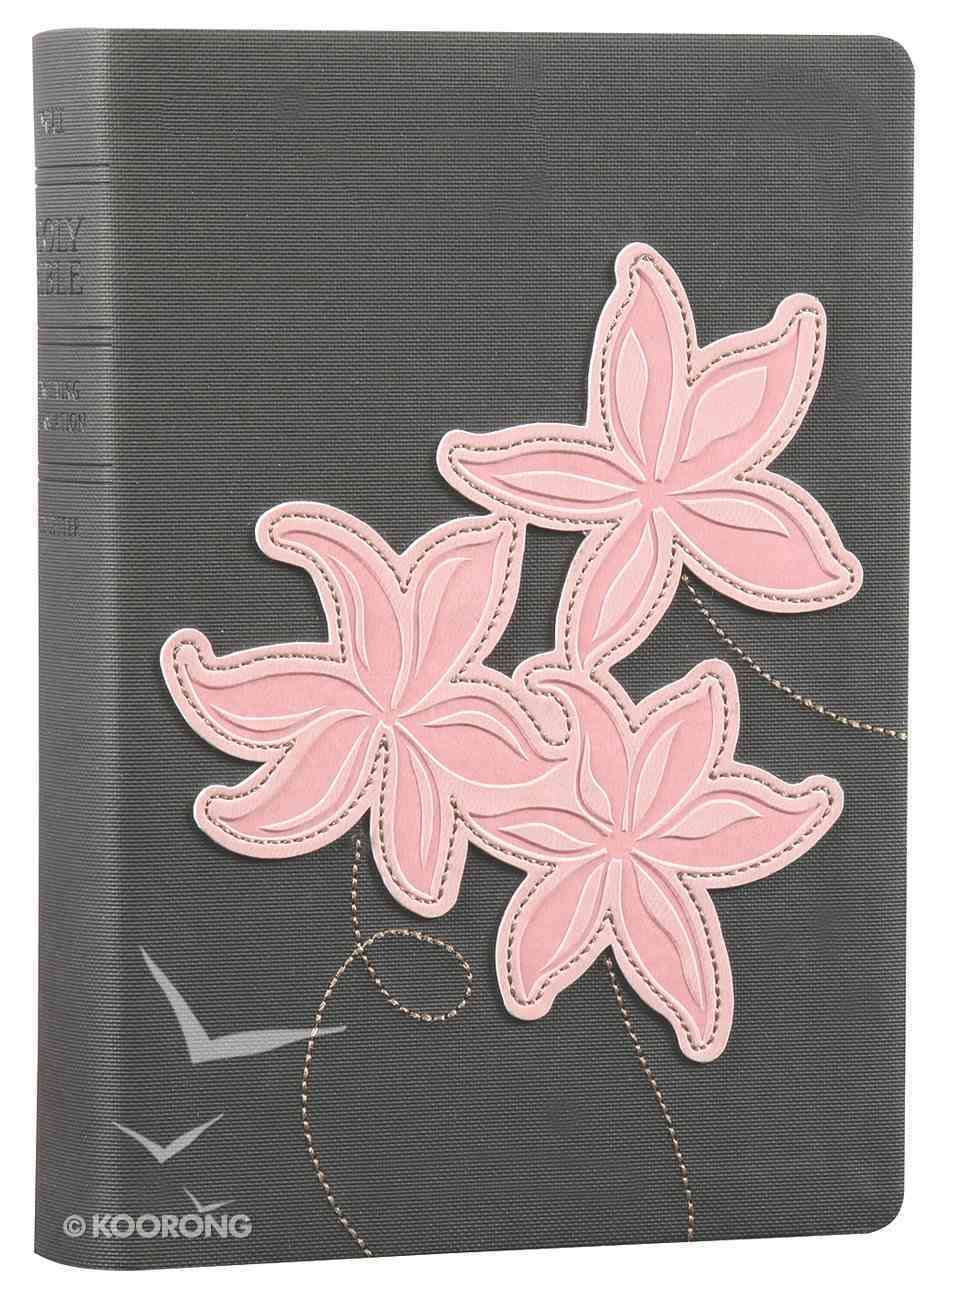 NLT Compact Large Print Bible Grey Pink Flowers (Red Letter Edition) Imitation Leather